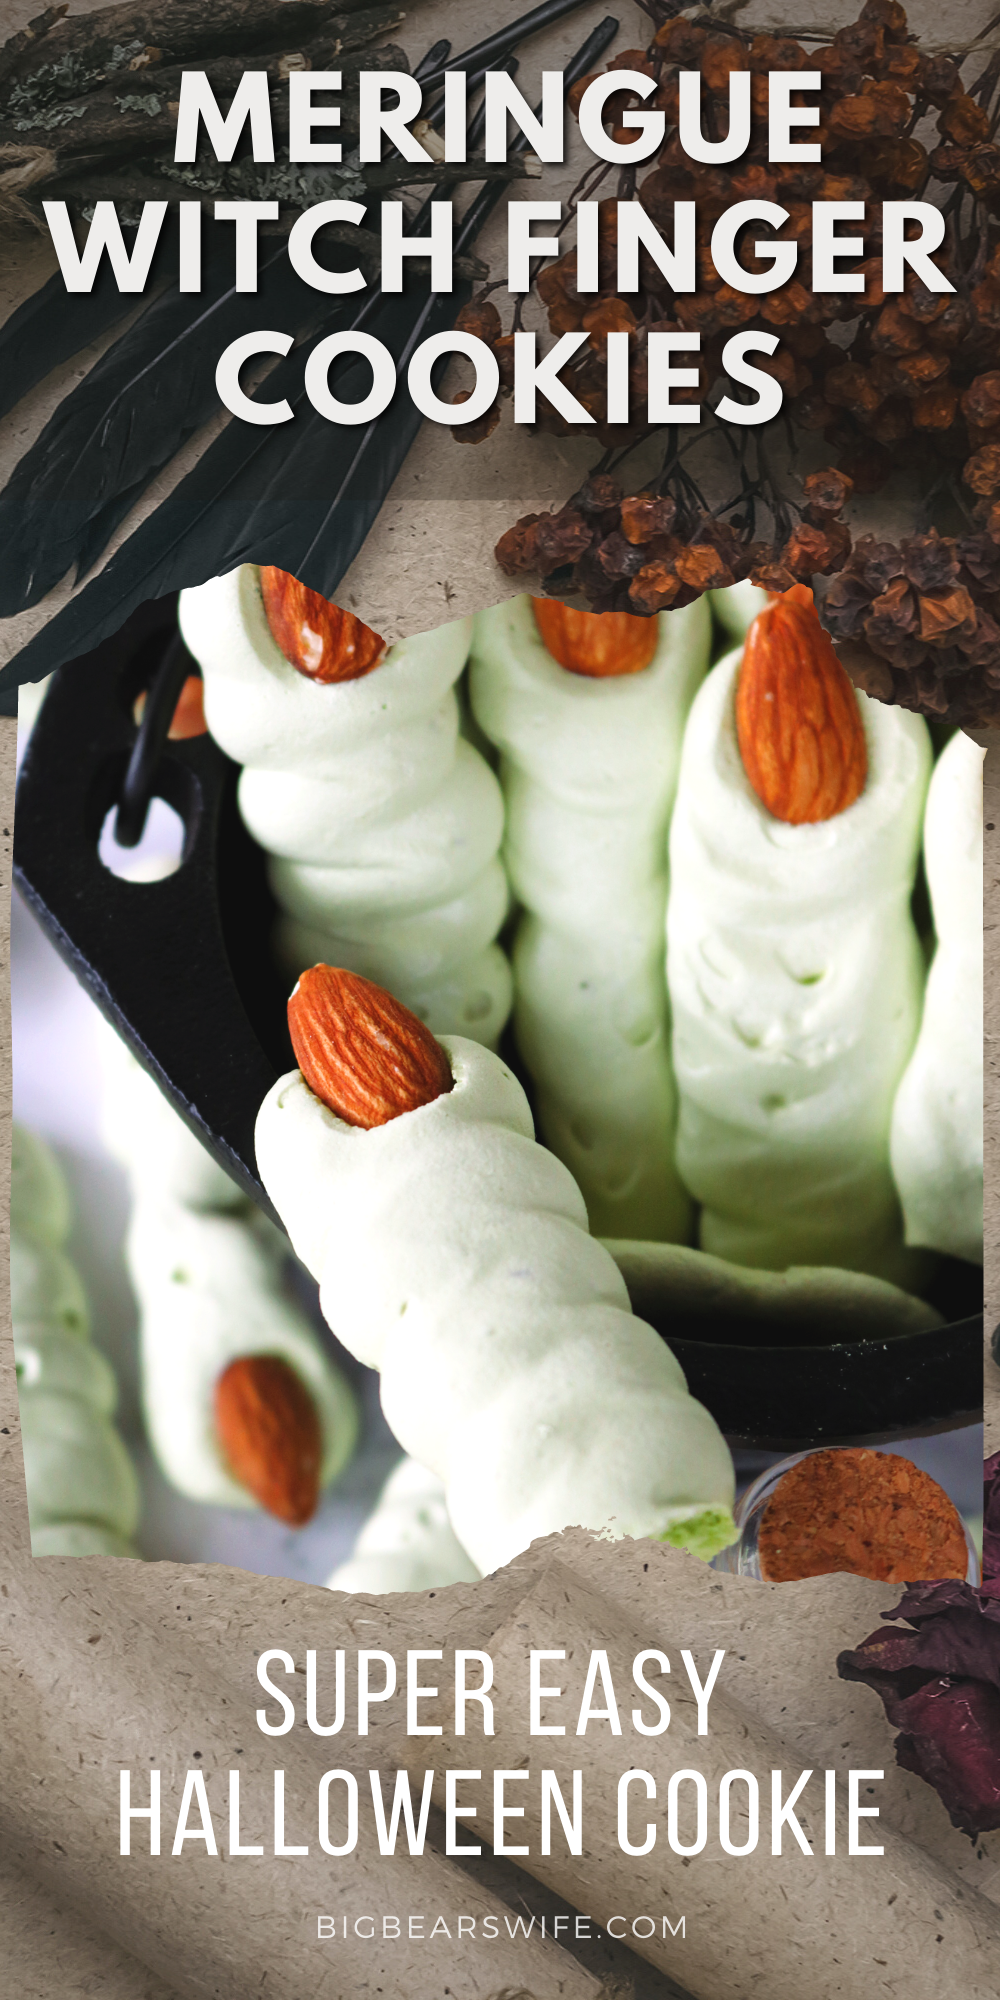 These easy Meringue Witch Finger Cookies are crispy, creepy and perfect for Halloween. These witch finger cookies are made with a meringue cookie recipe, colored green for of a bit of a classic witch look and decorated with an almond as the creepy witch nail! via @bigbearswife